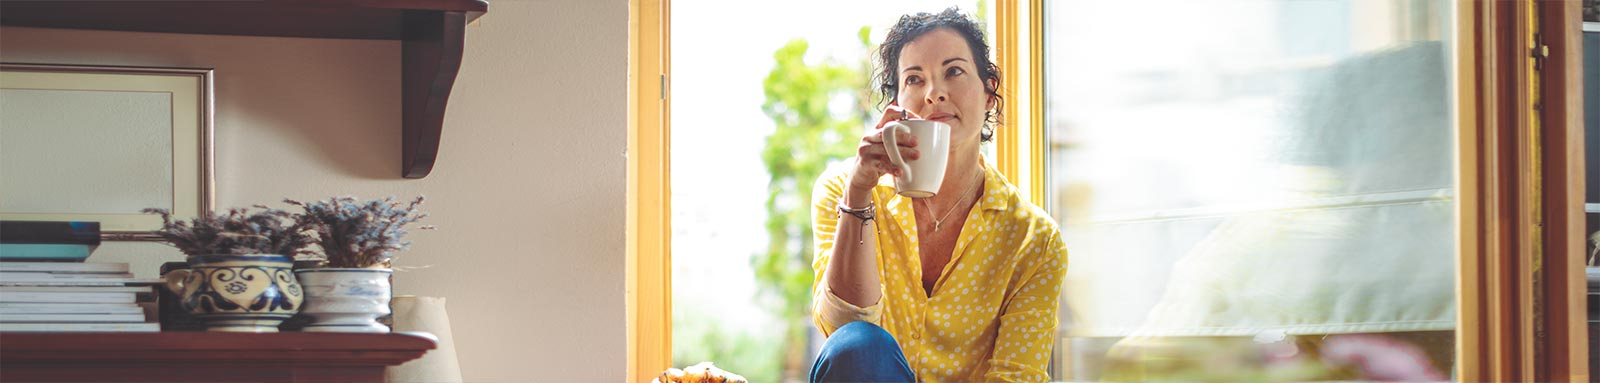 Woman thinking while drinking coffee by the window